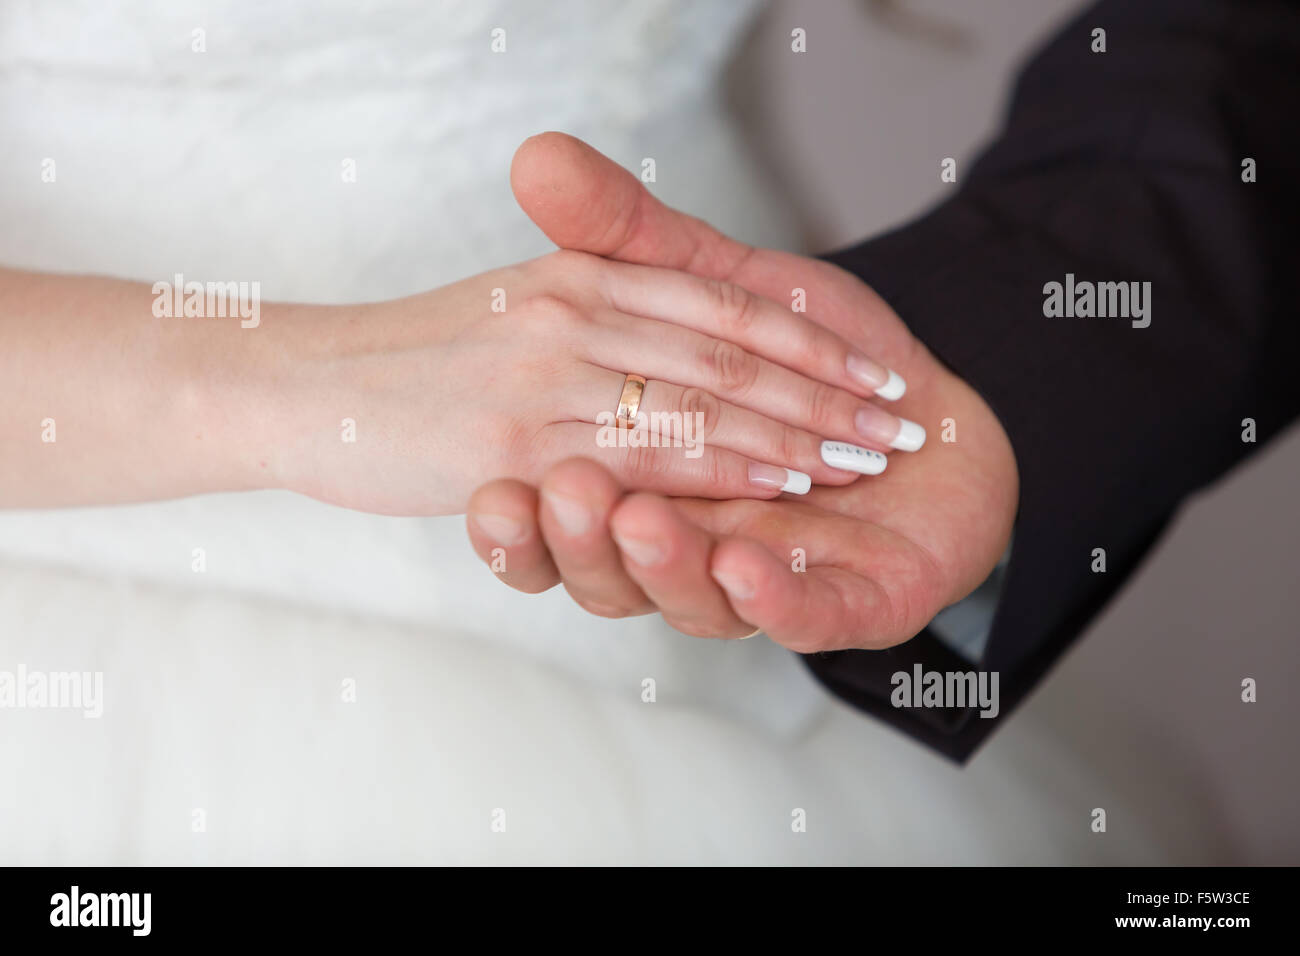 Gold Male Jewelry Stock Photos & Gold Male Jewelry Stock Images - Alamy